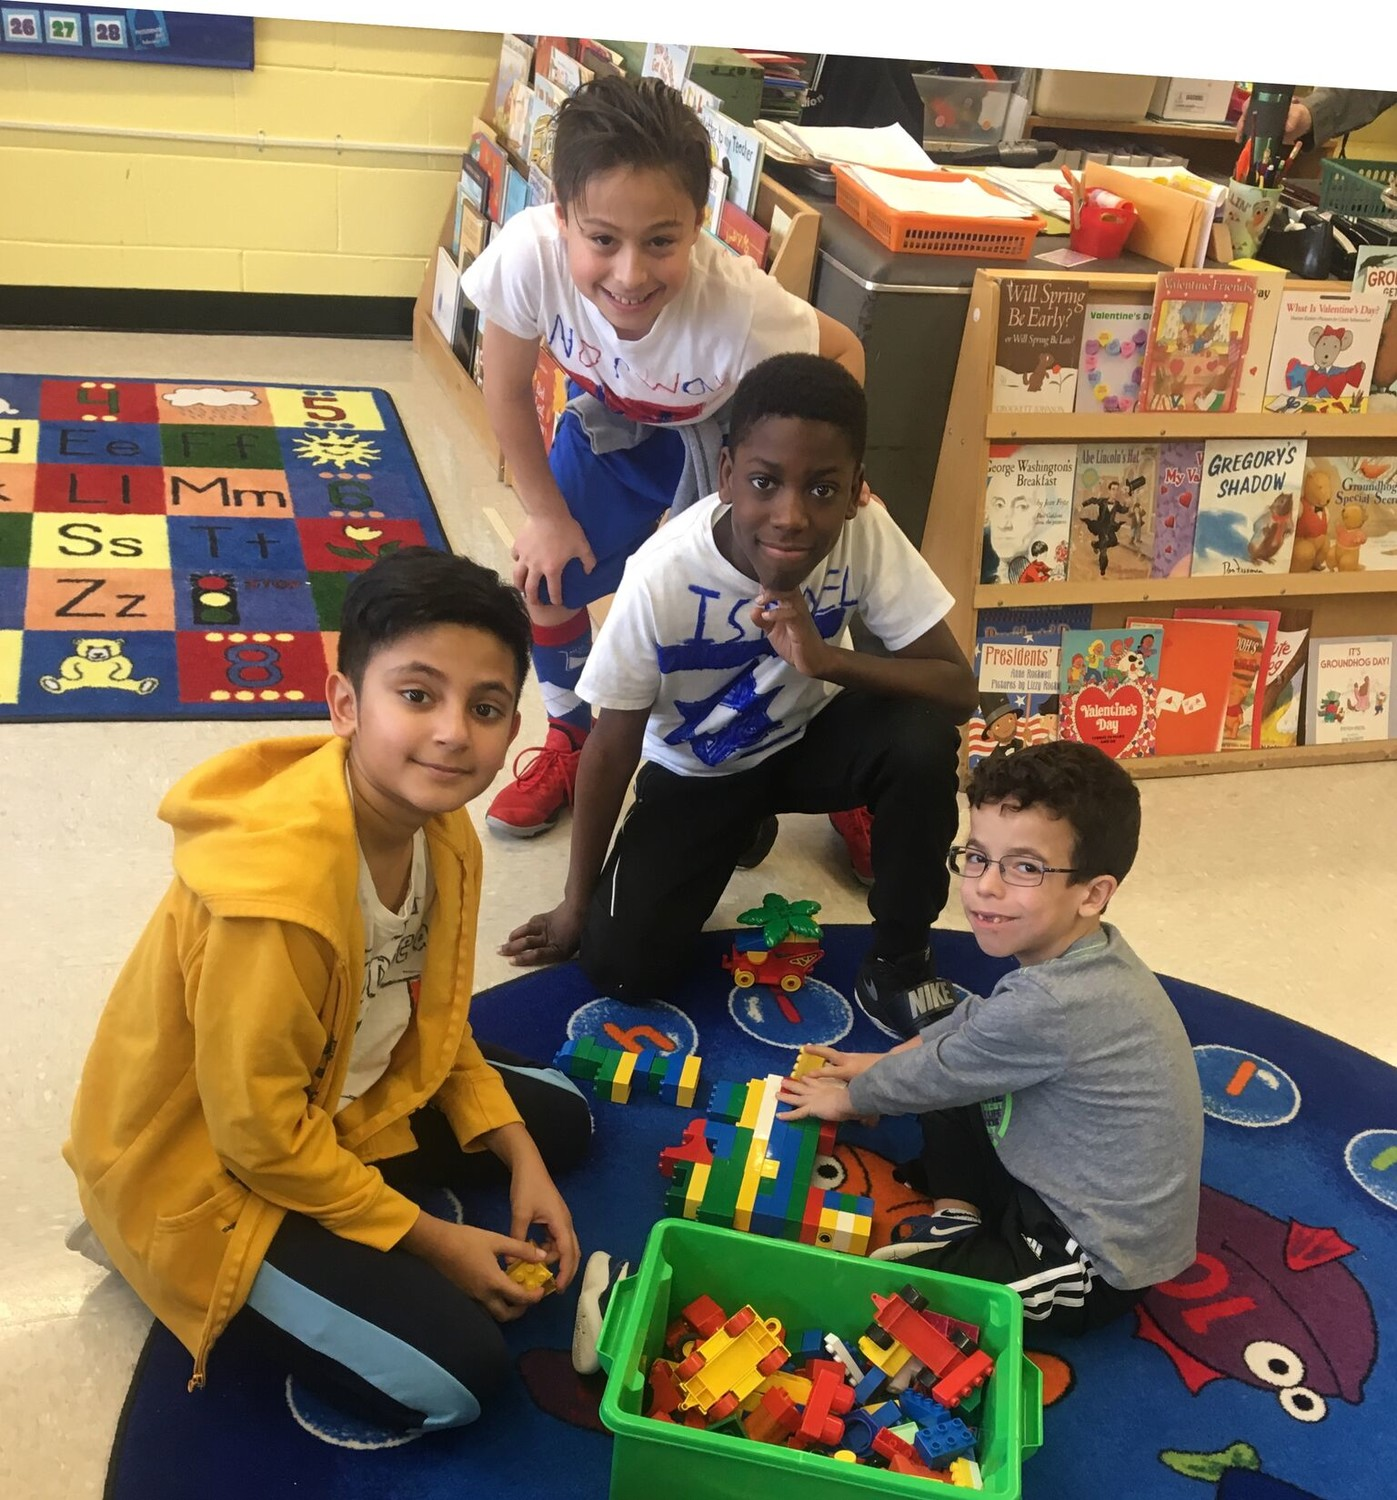 Students in the Buddy Club built Legos while fostering friendships.